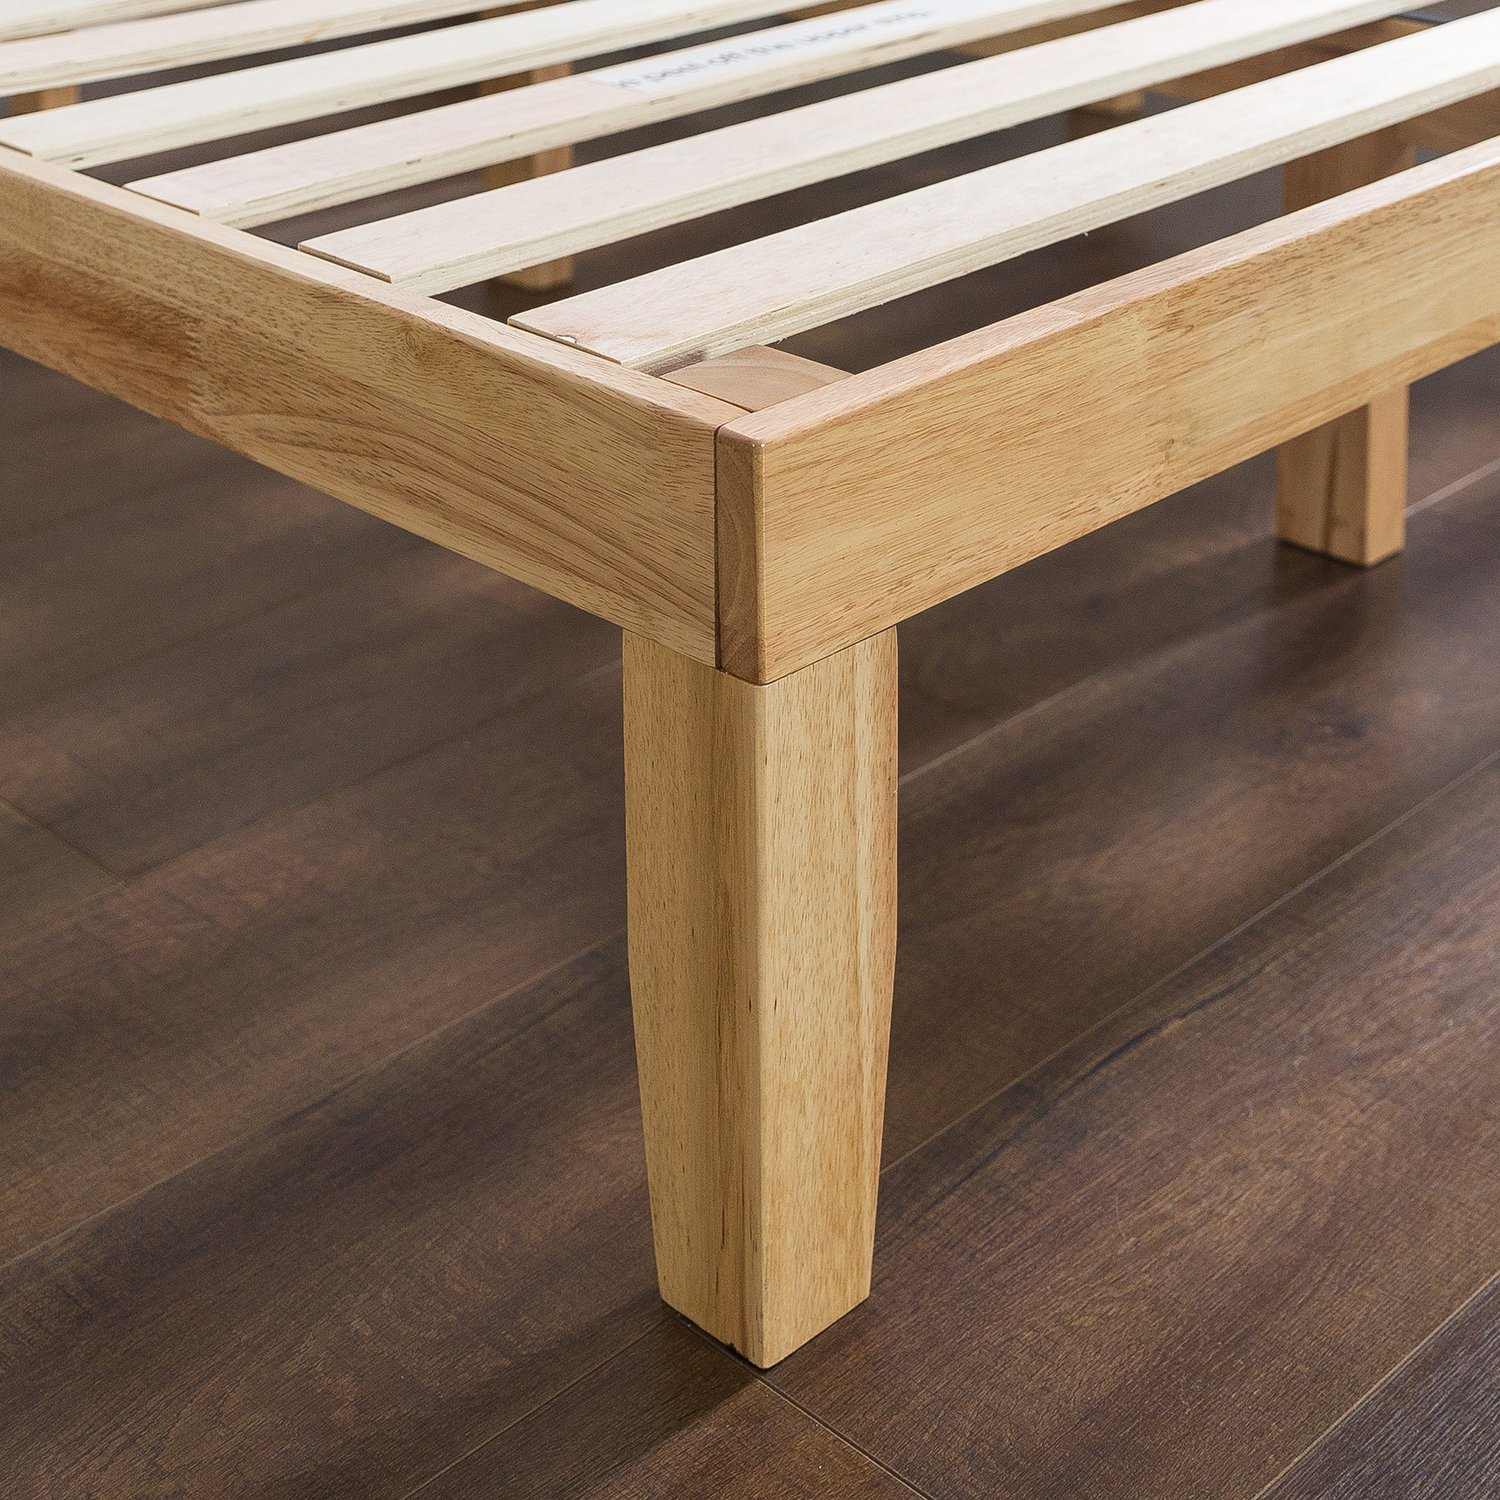 Zinus 14 Inch Wood Platform Bed / No Boxspring Needed / Wood Slat Support / Natural Finish, Twin by Zinus (Image #4)